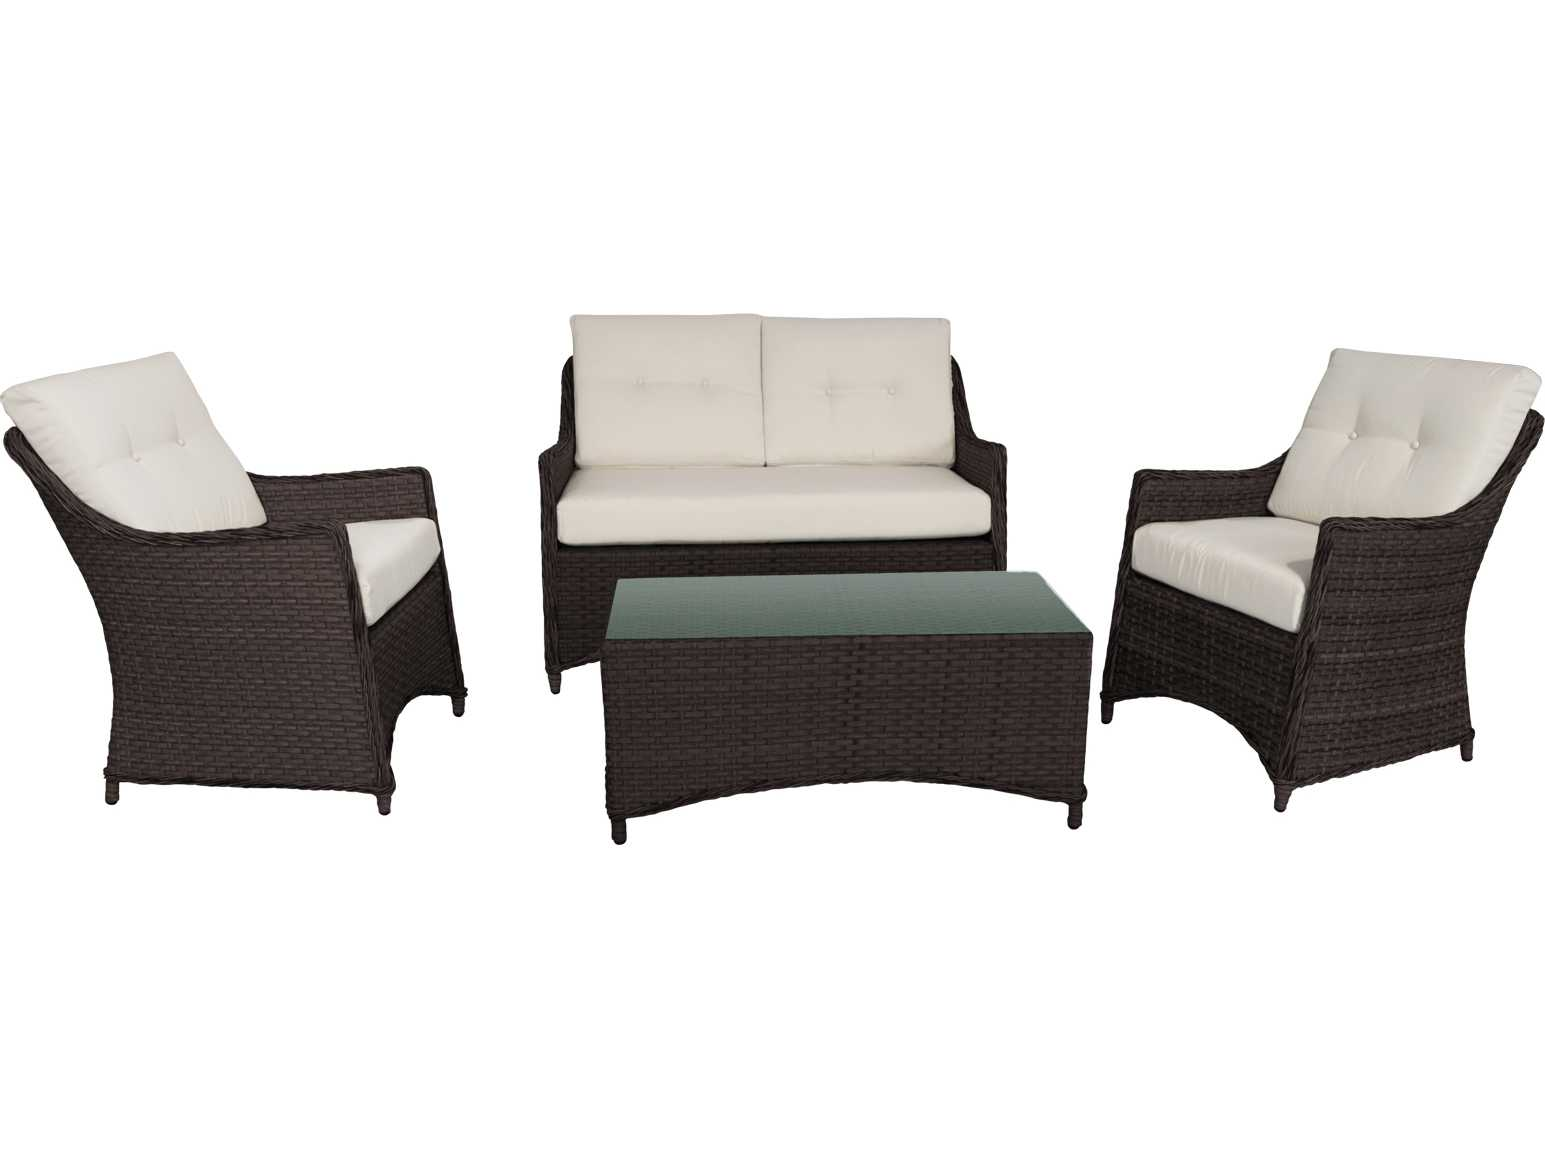 Source Outdoor Furniture Alpine Wicker 4 Piece Set